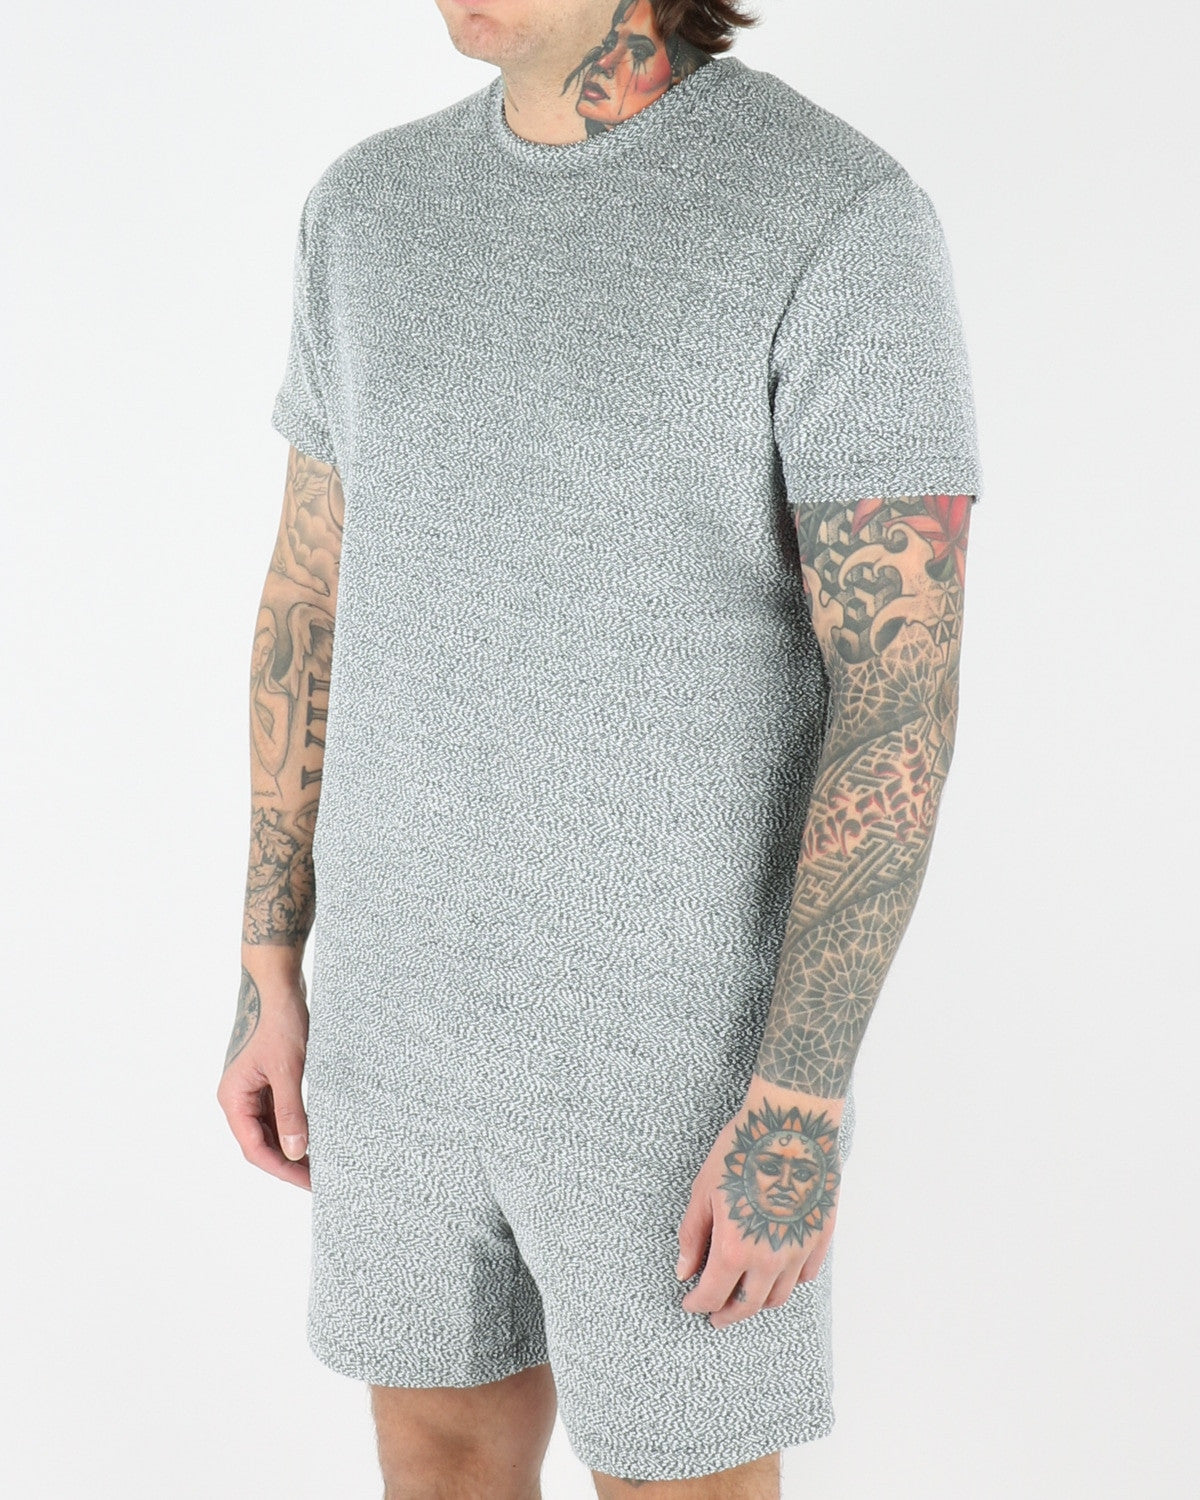 wac_we are copenhagen_augusto_o-neck t-shirt_dark grey melang_view_2_3